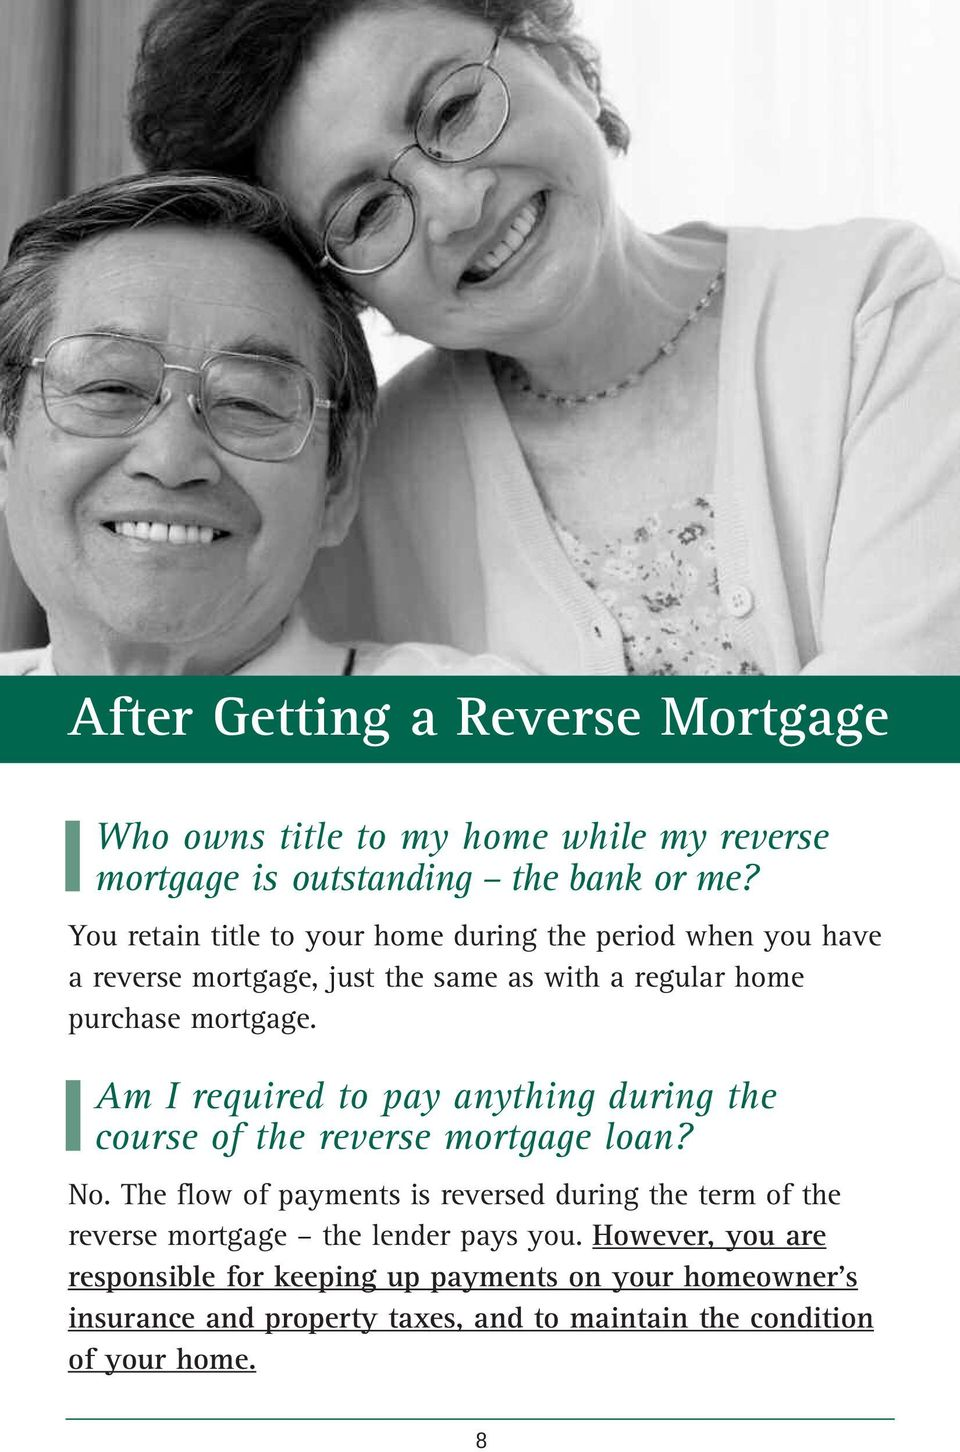 Am I required to pay anything during the course of the reverse mortgage loan? No.